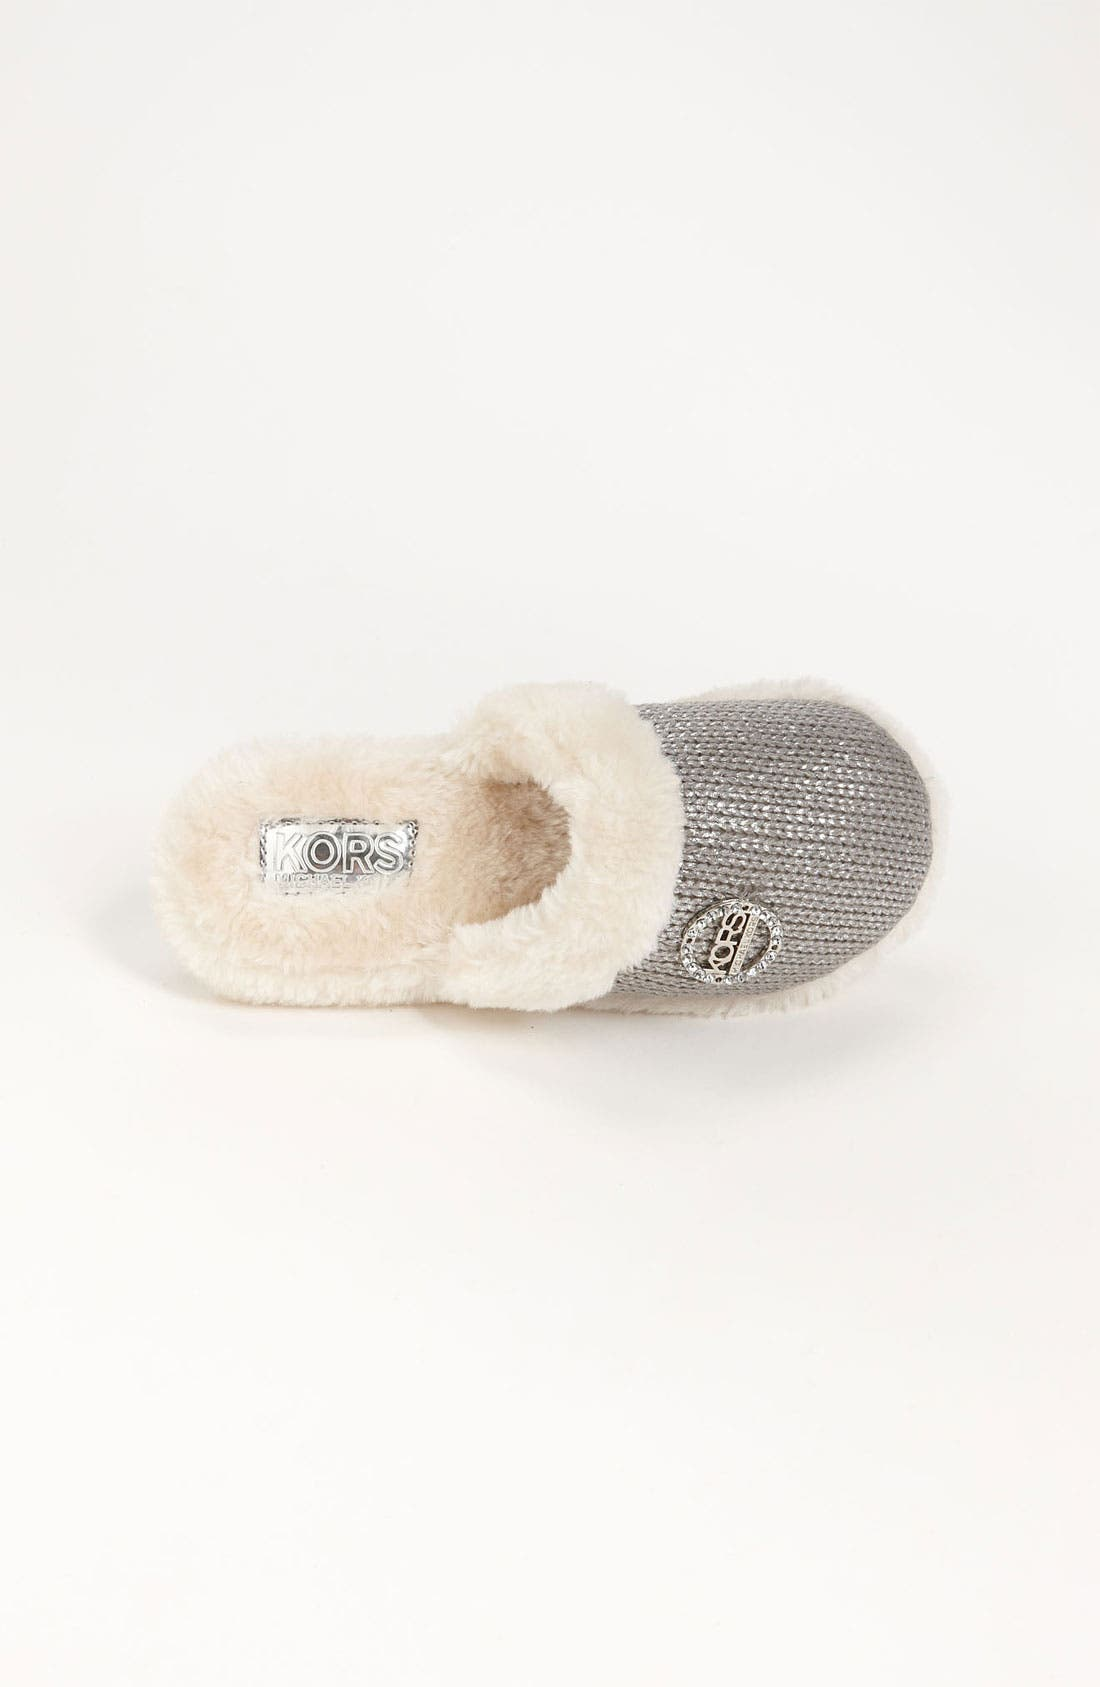 Alternate Image 3  - KORS Michael Kors 'Shiloah' Slipper with Faux Fur Lining (Toddler, Little Kid & Big Kid)